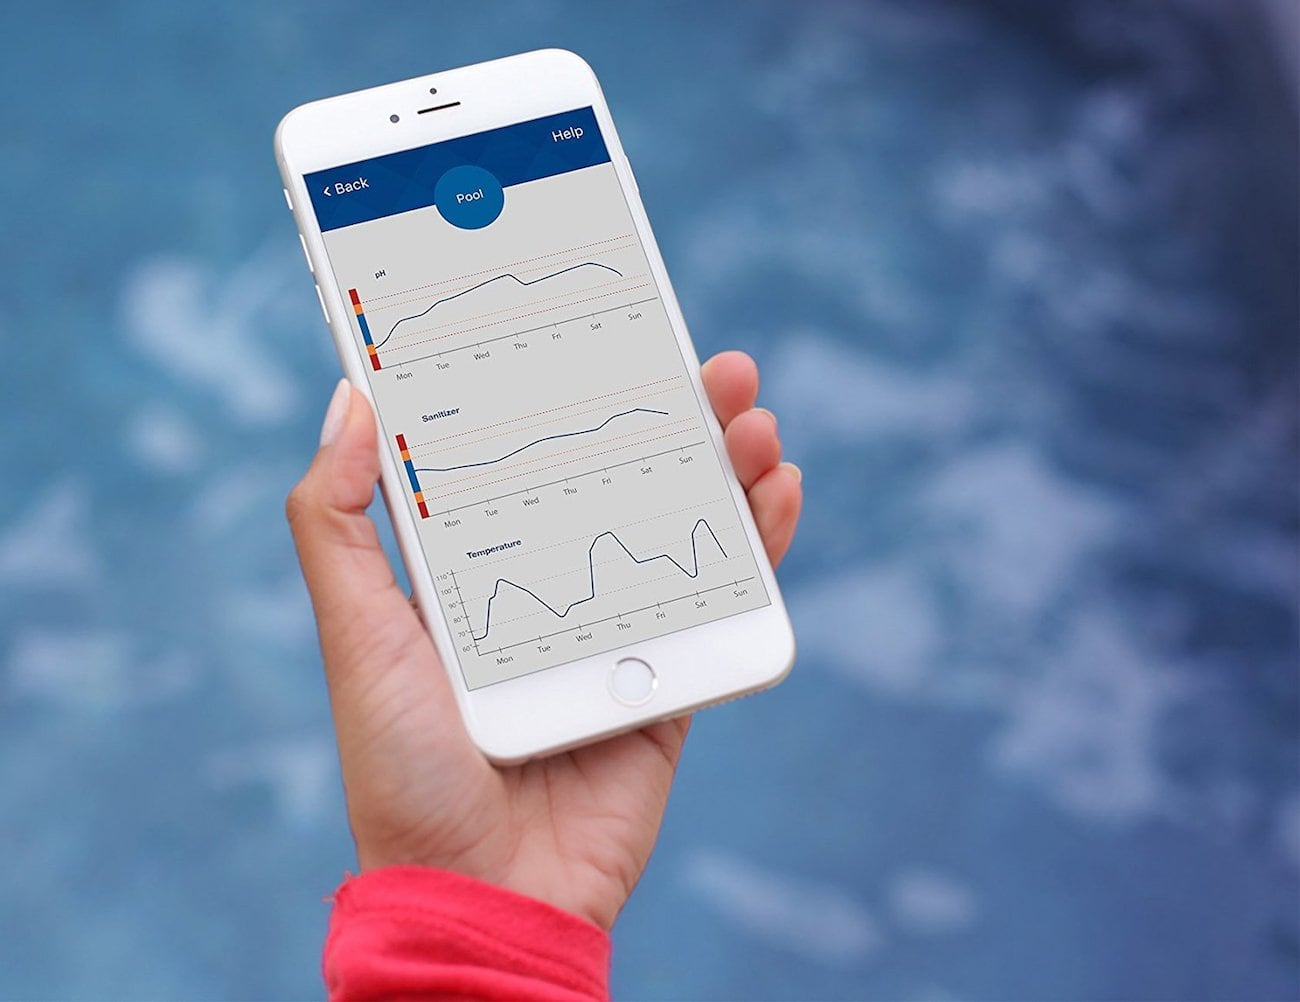 pHin Smart Pool Water Quality Monitor